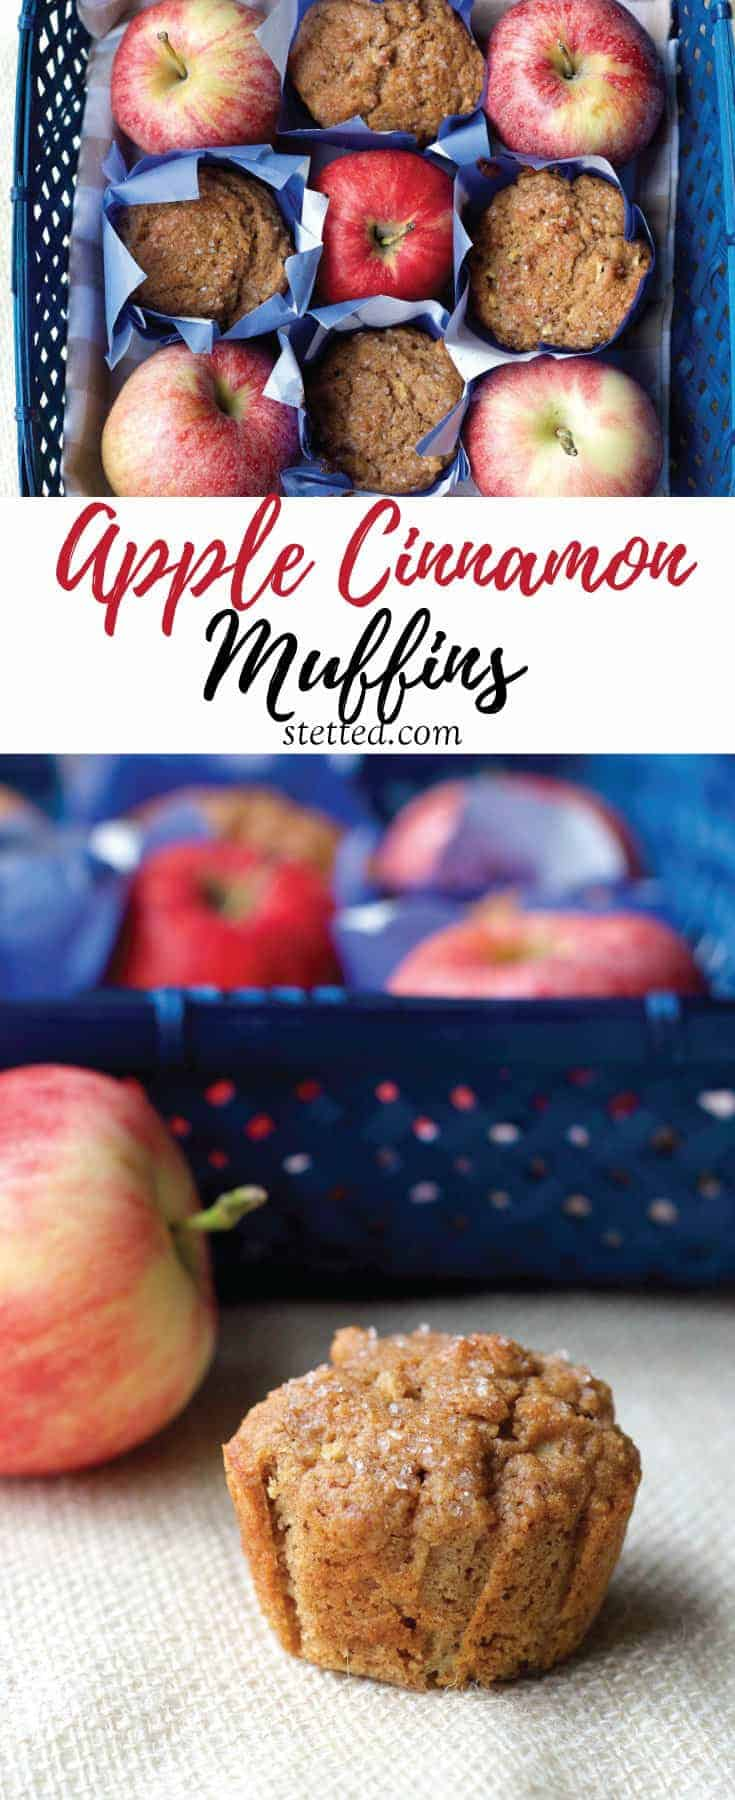 Whole wheat apple cinnamon muffins are a great start to your day, lunch box filler, or afternoon snack.